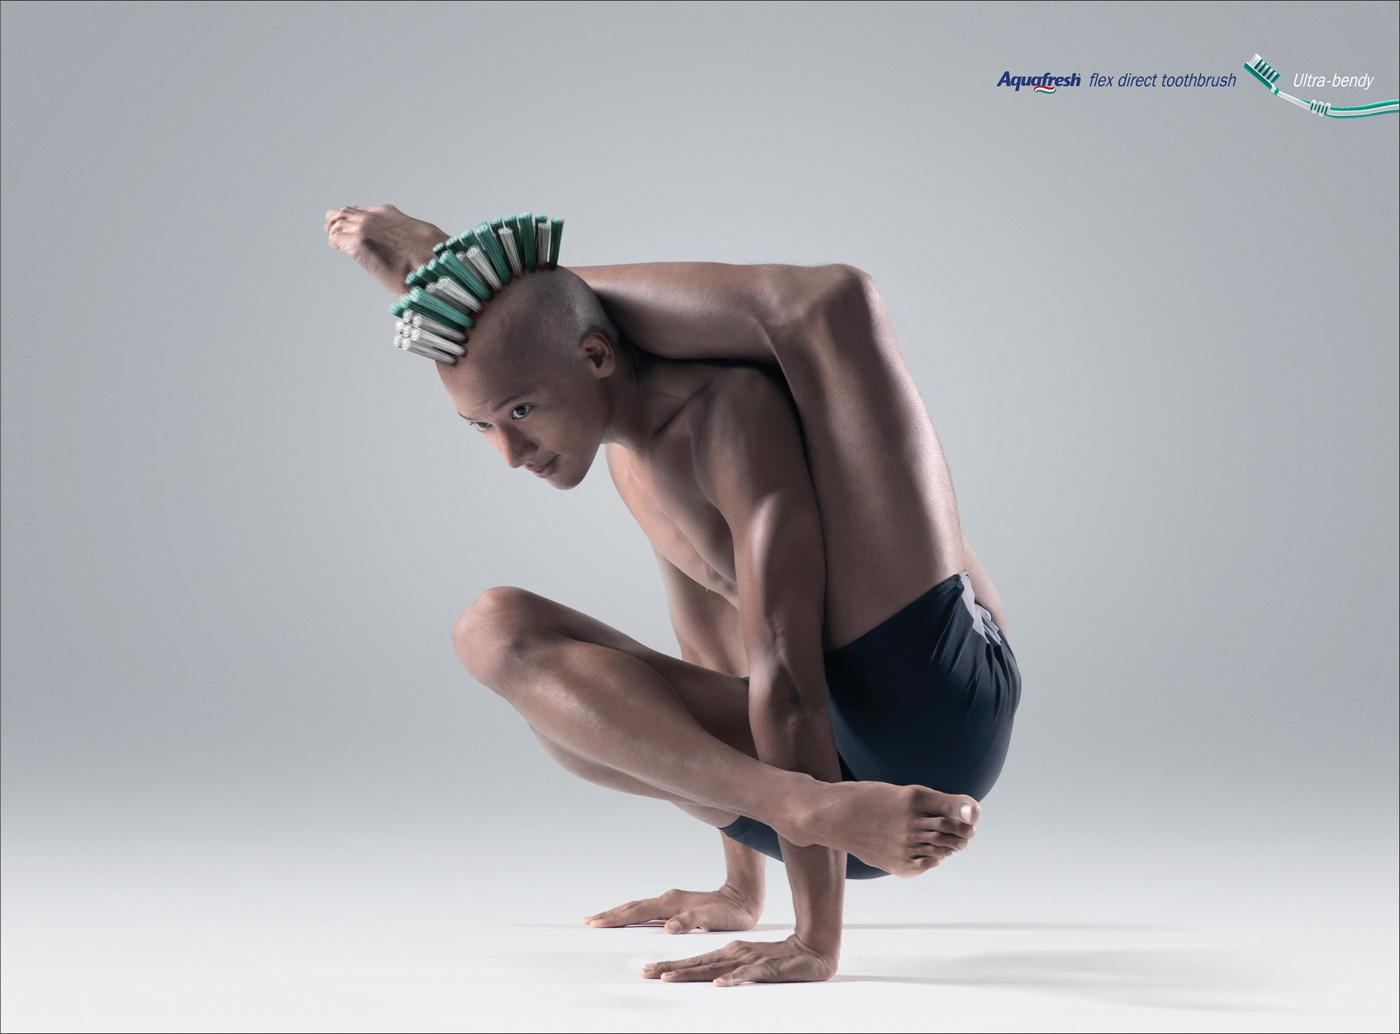 Aquafresh Print Ad -  Ultra-bendy, 1